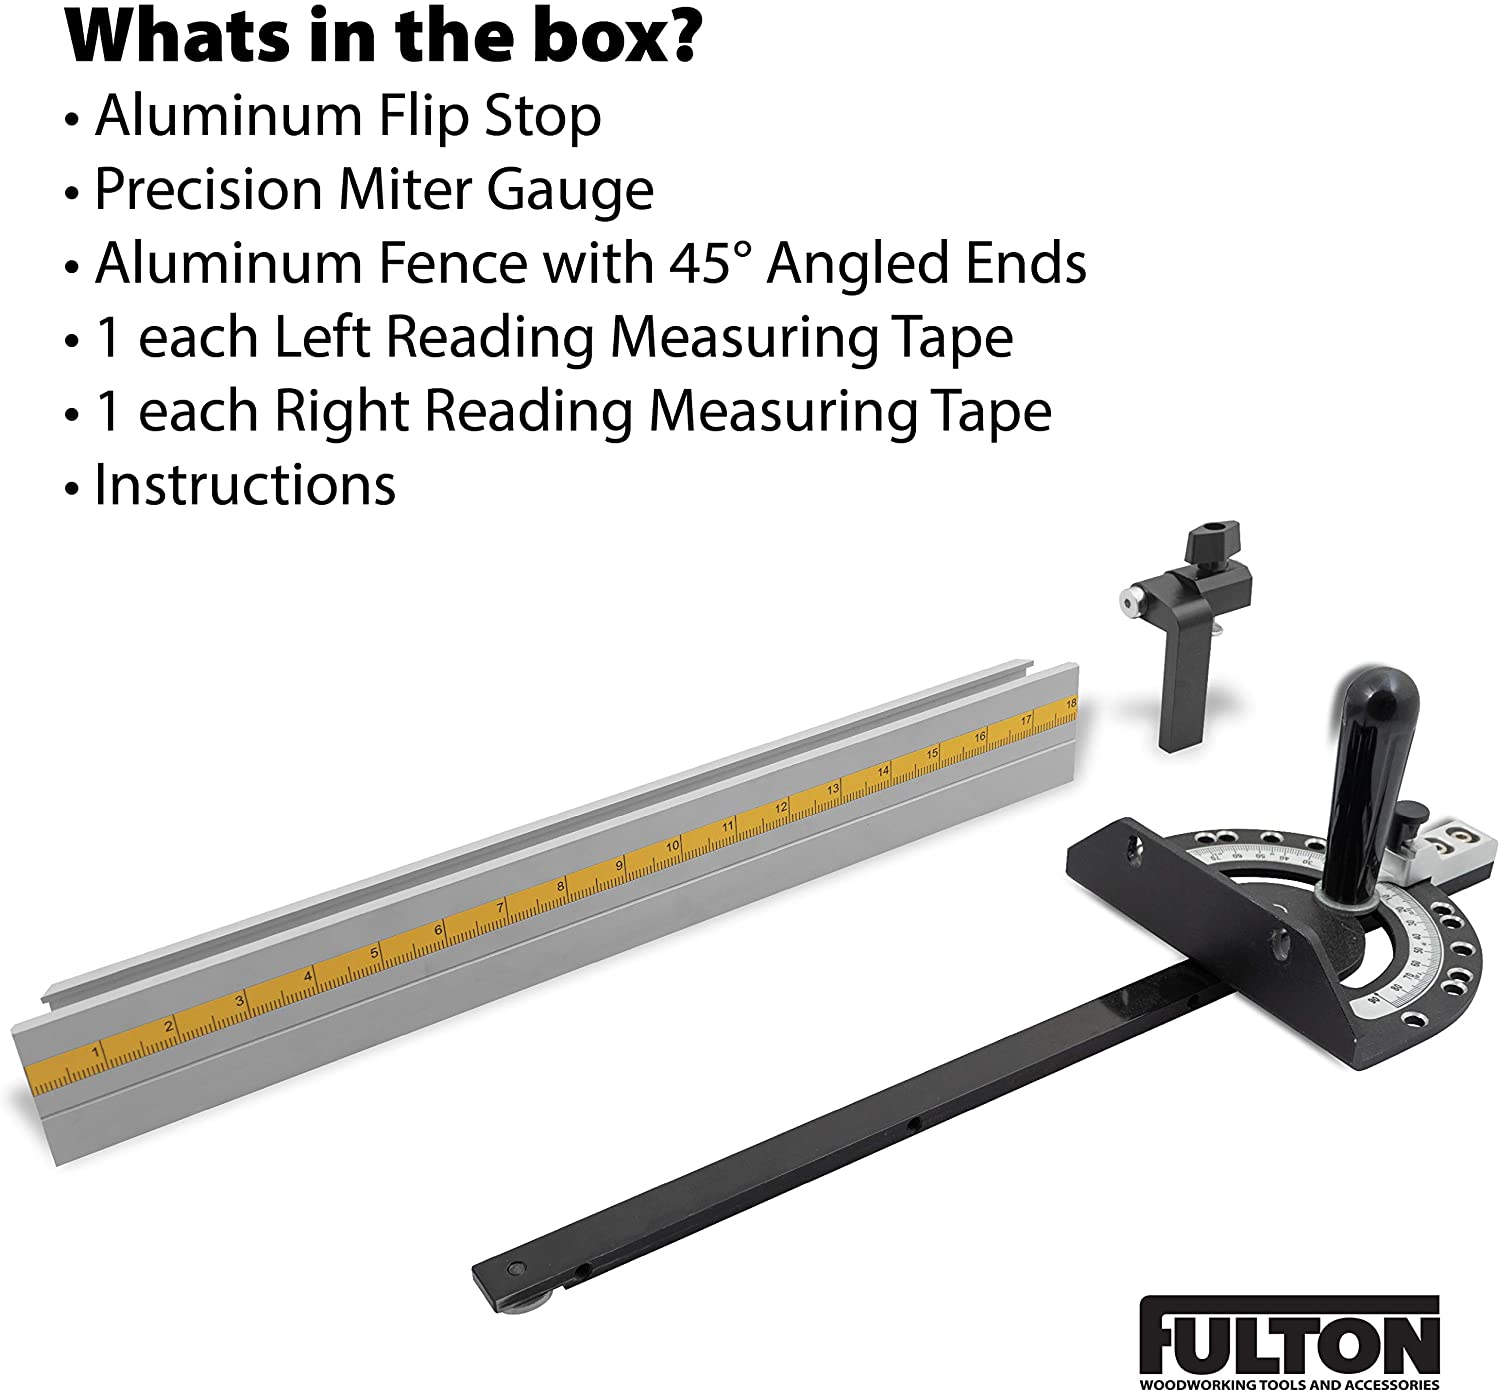 Fulton Precision Miter Gauge with Aluminum Miter Fence with 45 degree Angled Ends for Maximum Stock Support and a Repetitive Cut Flip Stop